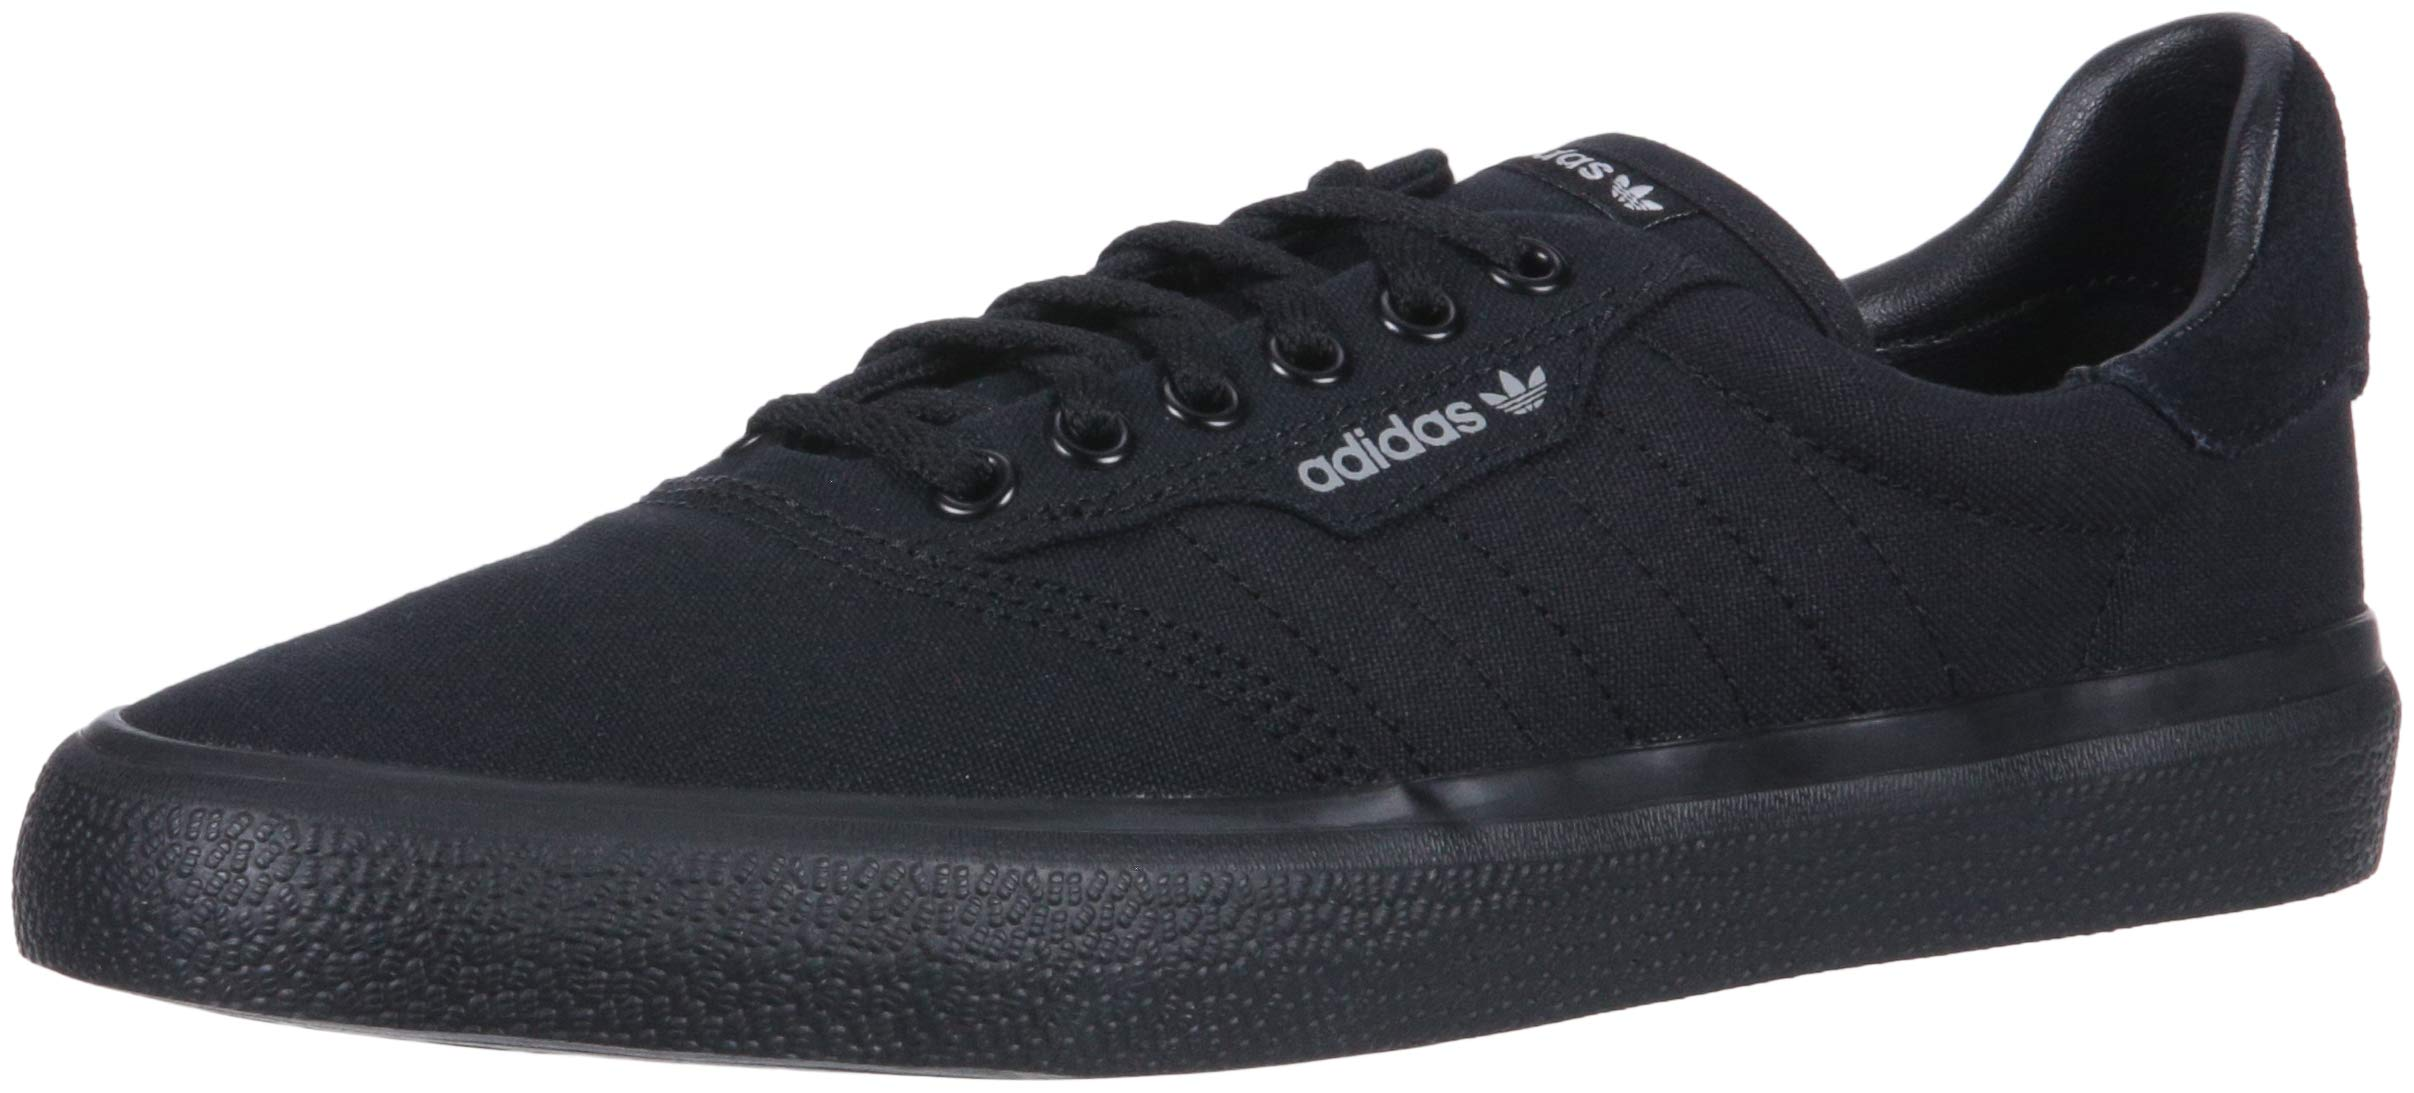 de77598b882142 Galleon - Adidas Originals 3MC Skate Shoe